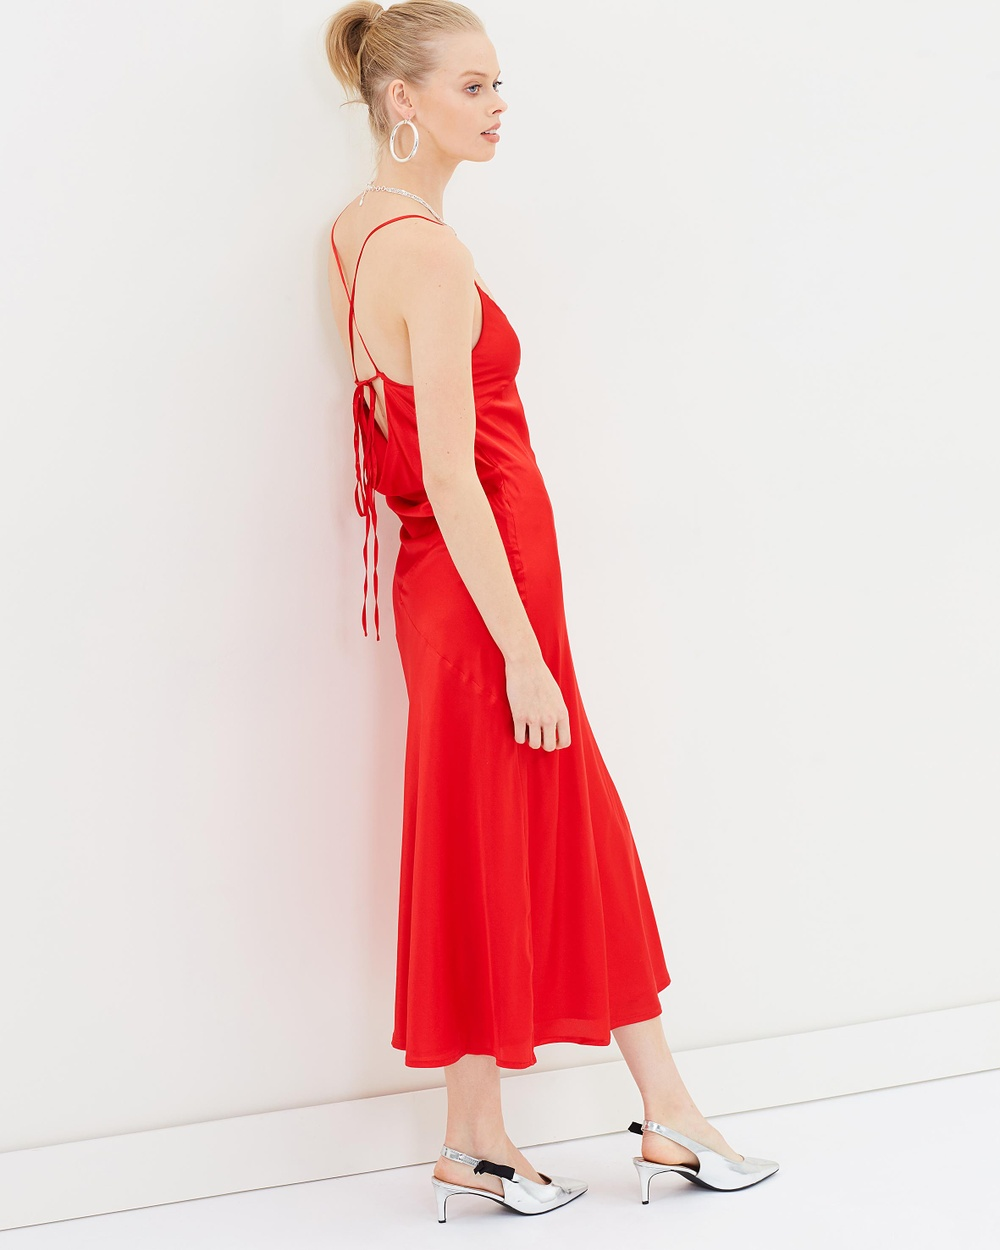 Hansen & Gretel Summer Silk Dress Dresses Scarlet Summer Silk Dress